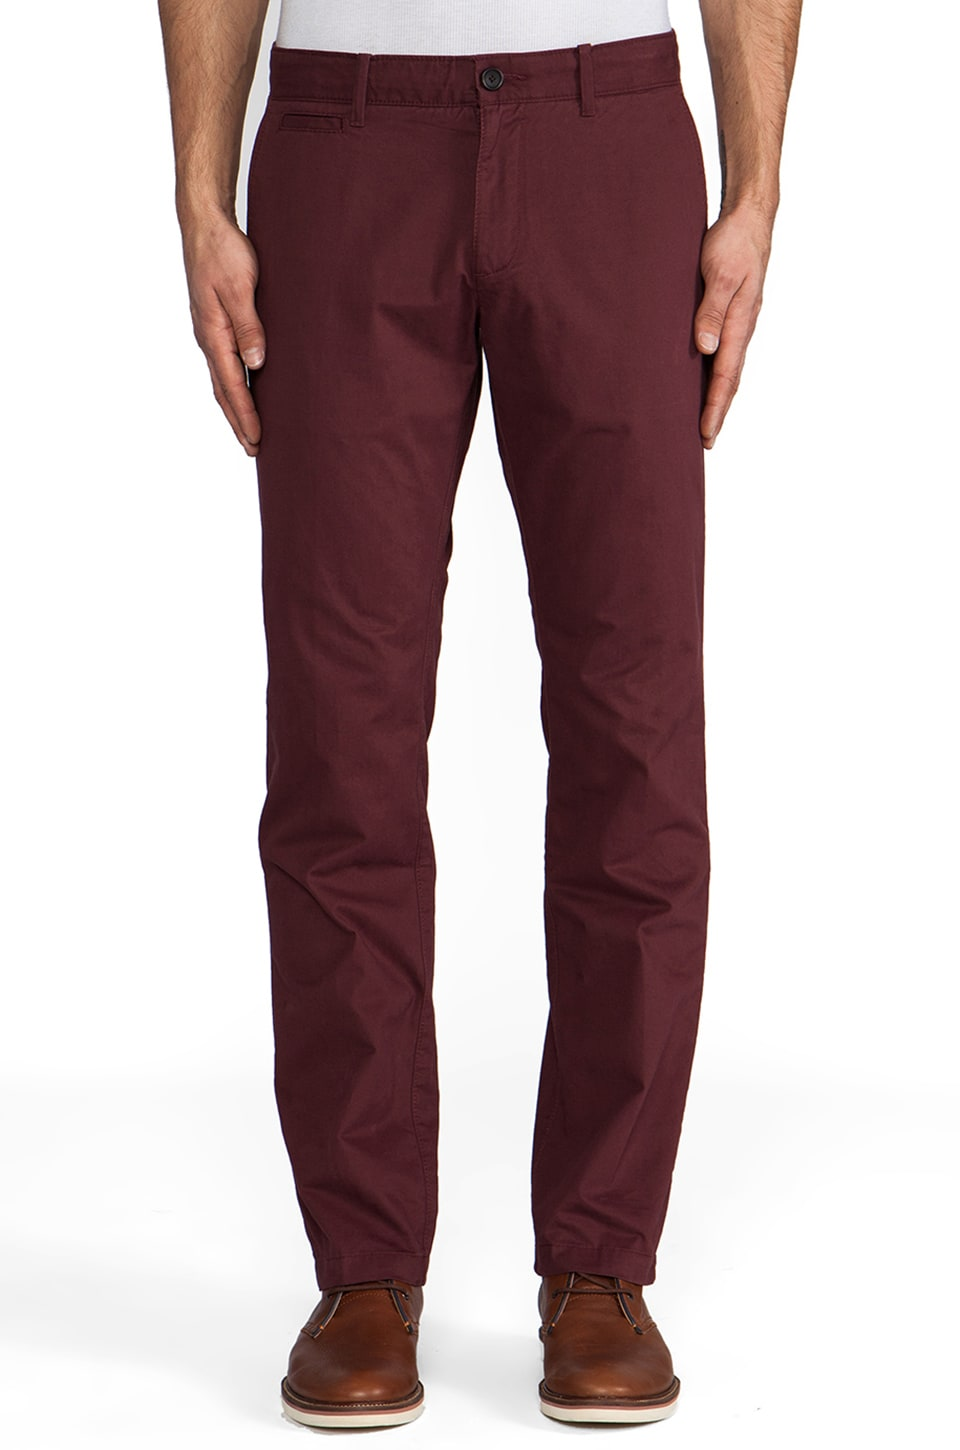 Penguin Straight Fit Chino in Vintage Merlot